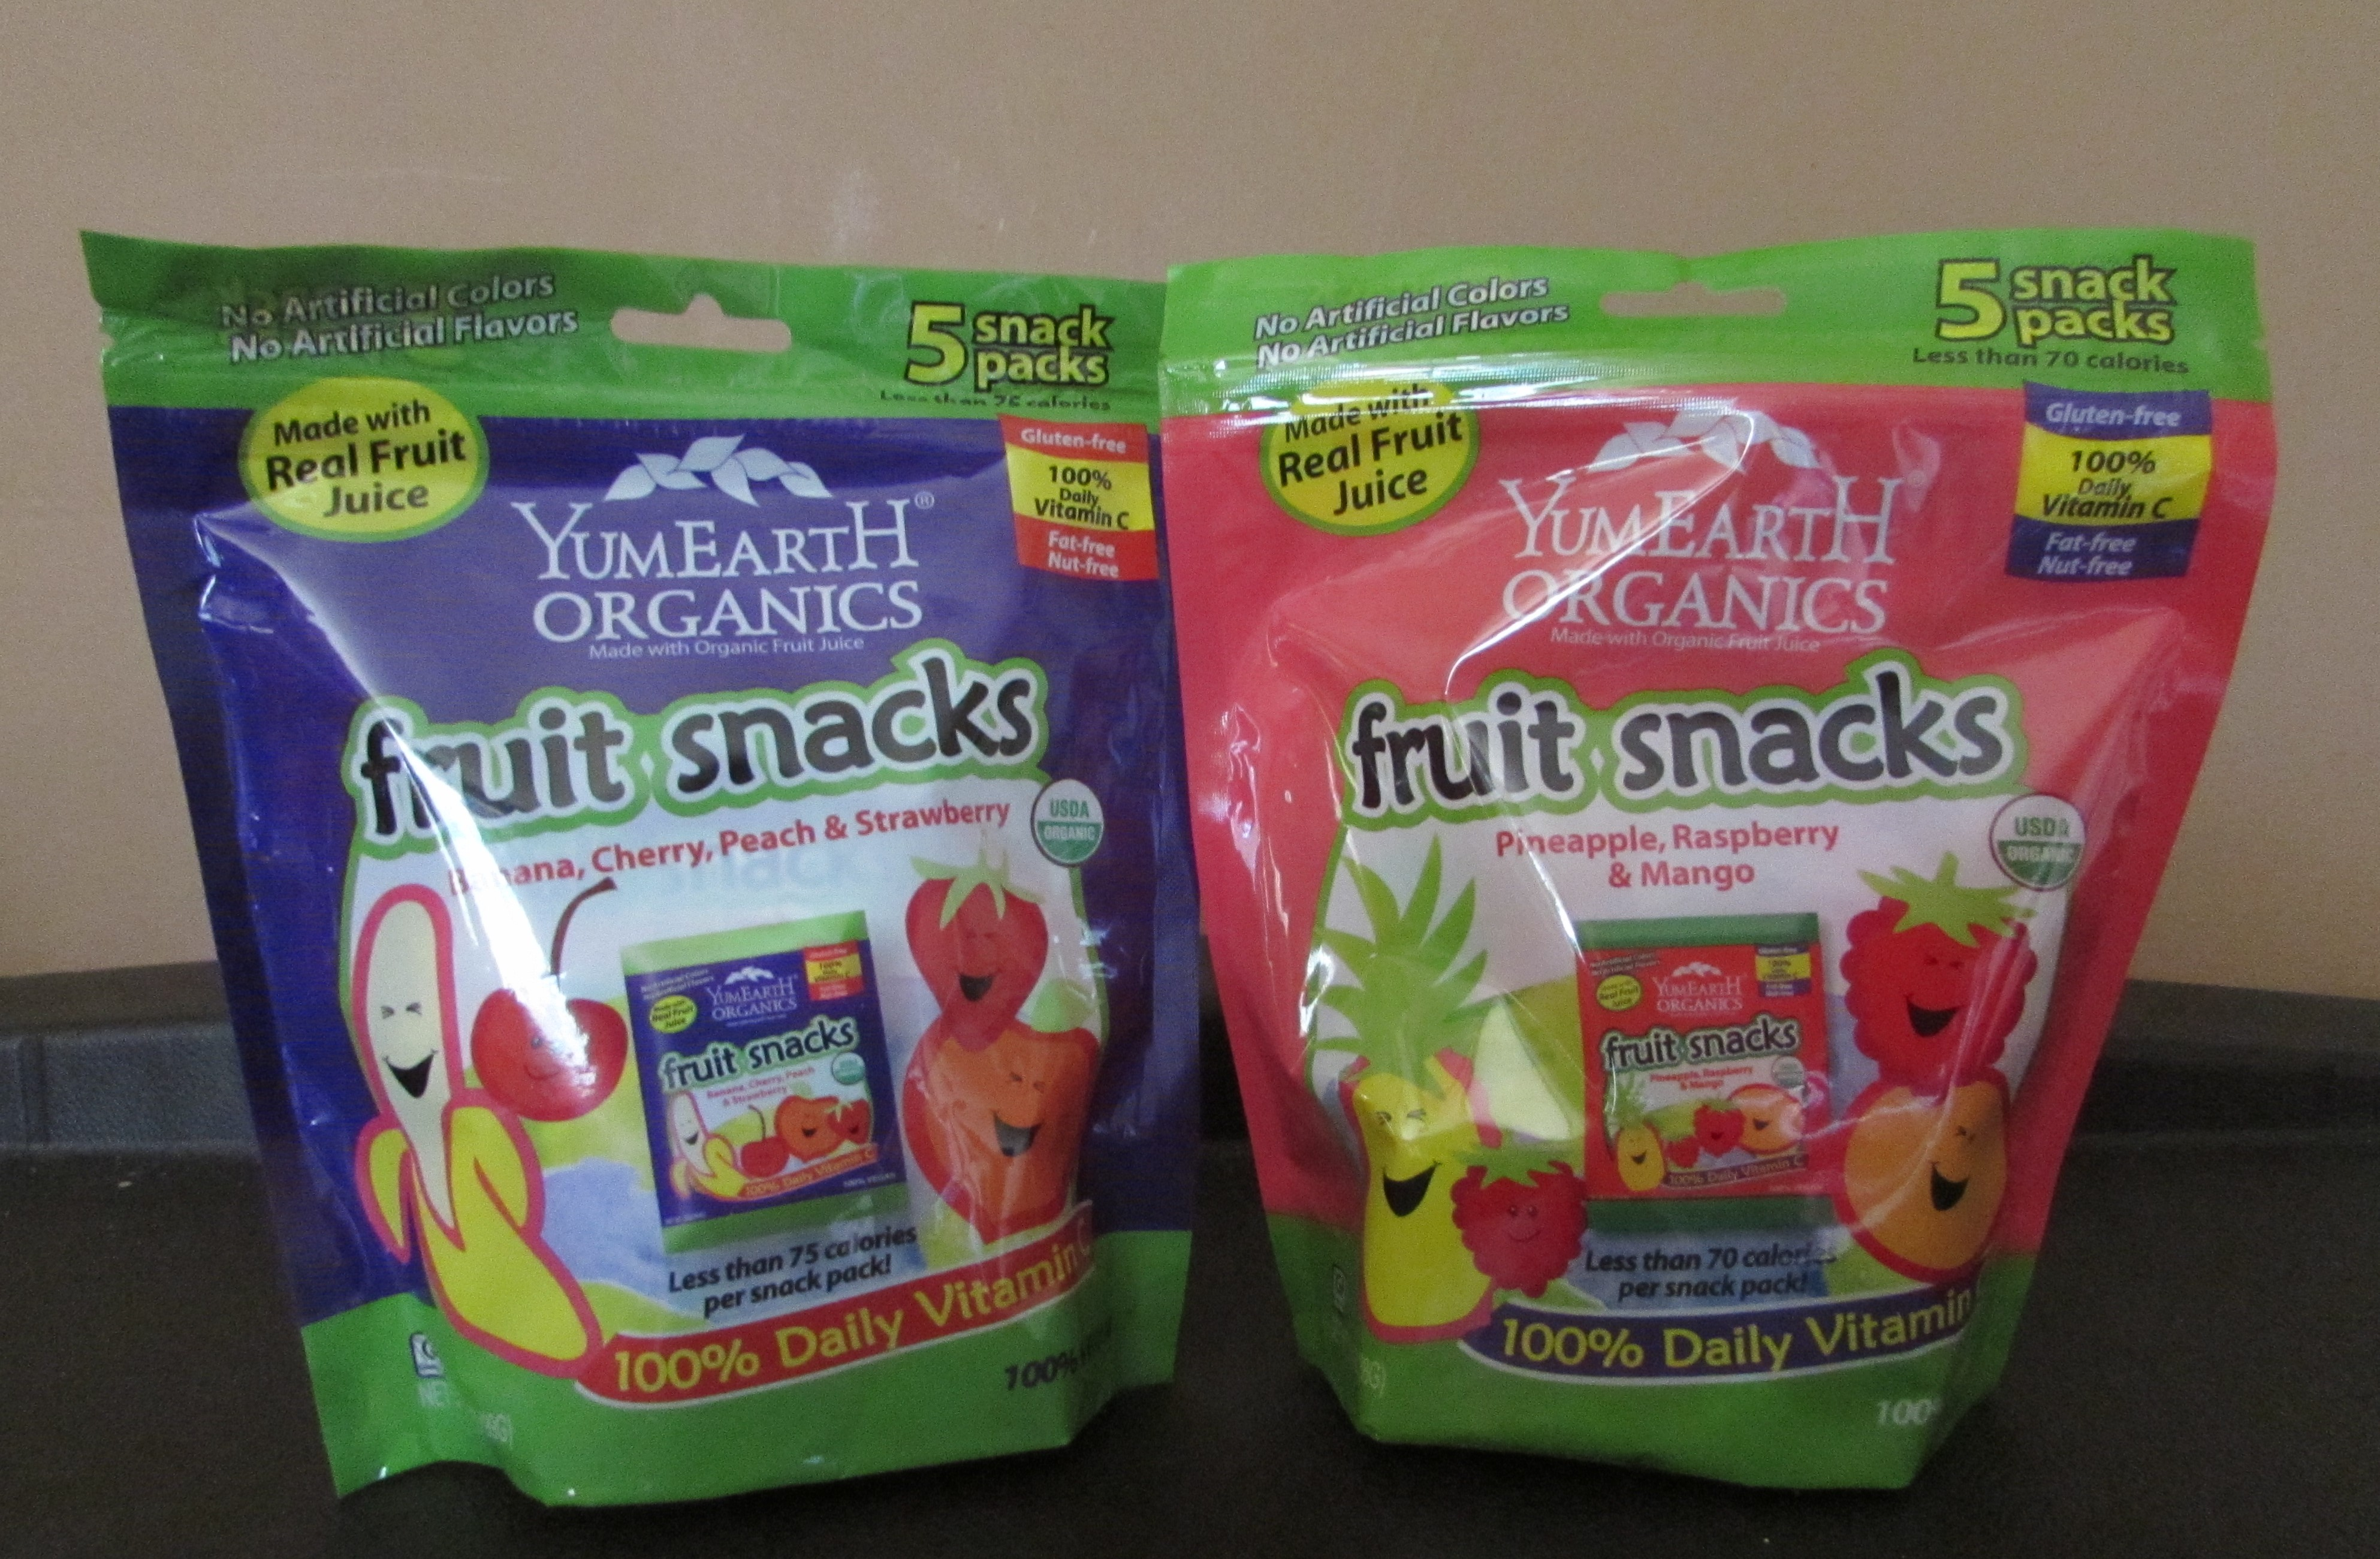 YumEarth Organics Fruit Snacks Product Review